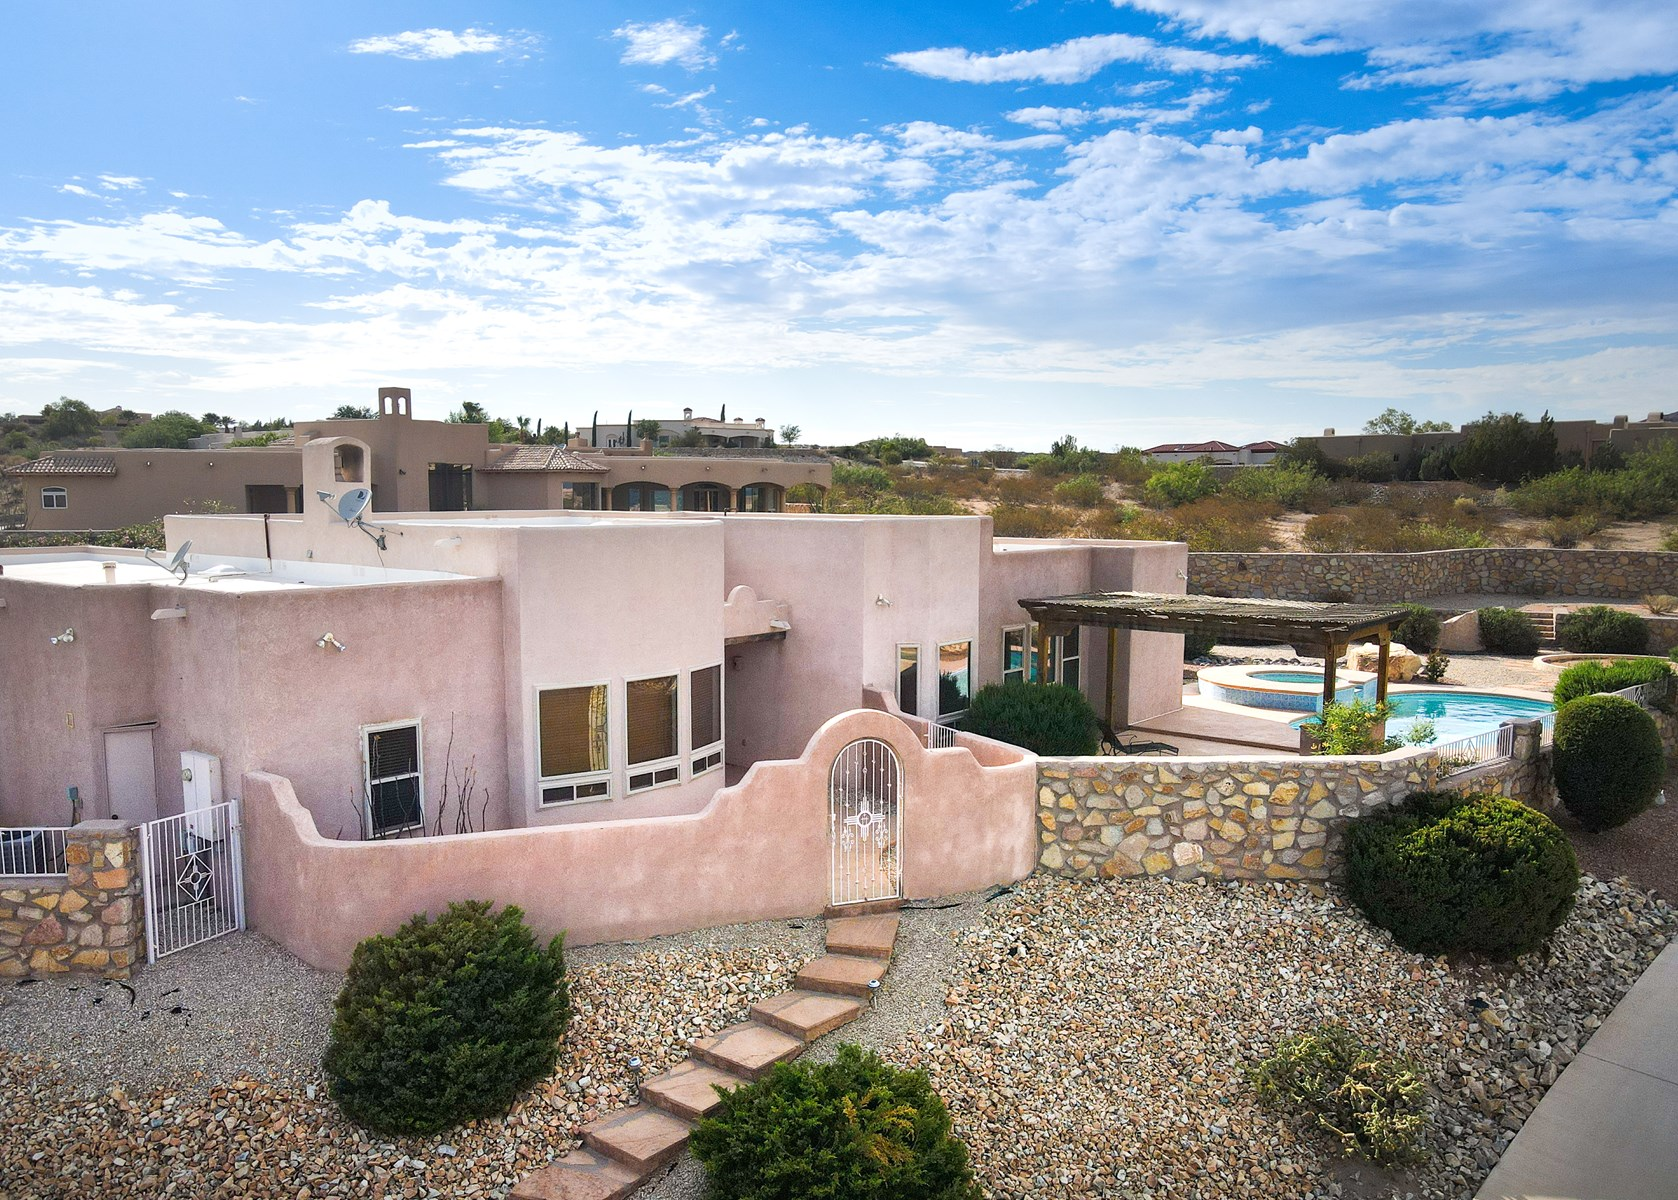 LAS CRUCES NEW MEXICO HOME FOR SALE PICACHO HILLS PROPERTY